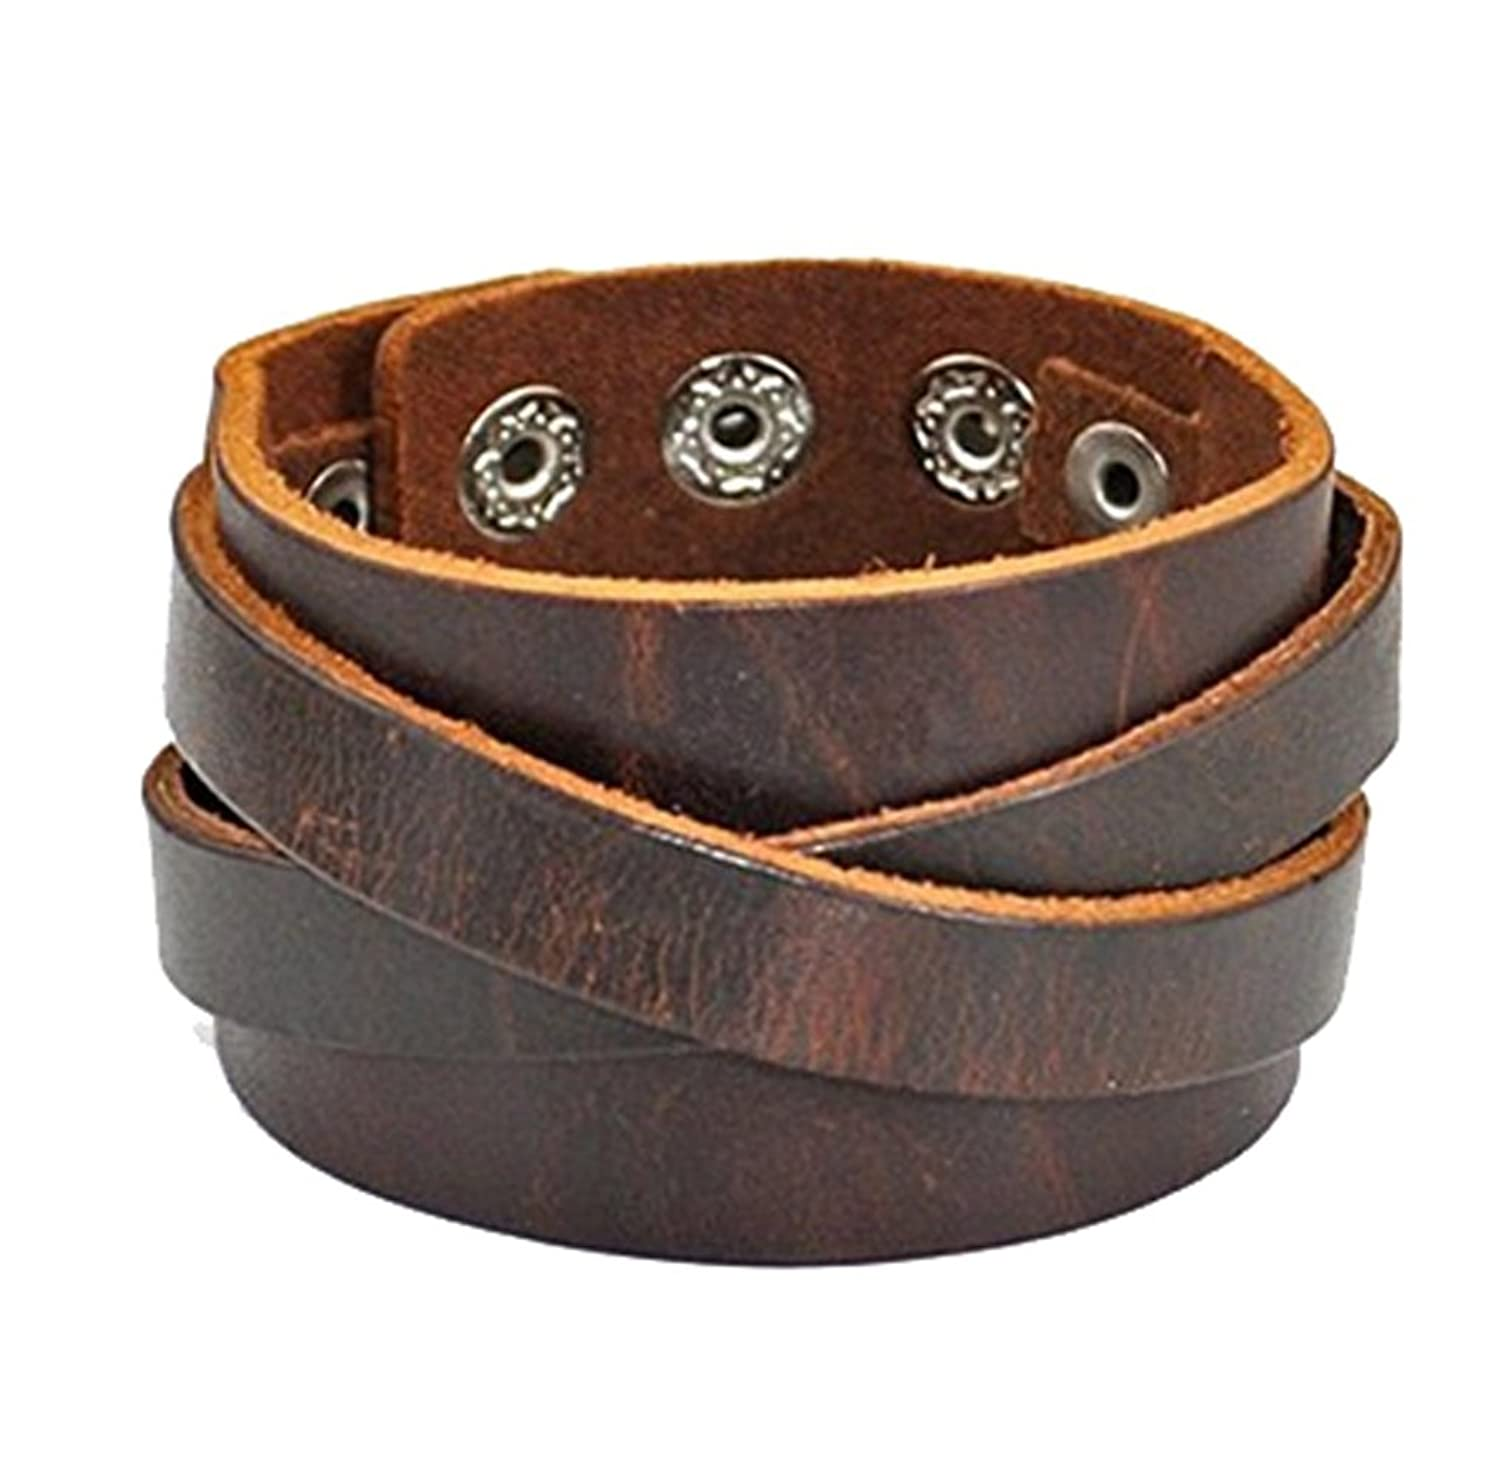 Amazon: Cherryzz Real Leather Cuff Women Leather Bangle Bracelet, Men  Leather Cuff Bracelet, Wide Belt Bracelet: Jewelry